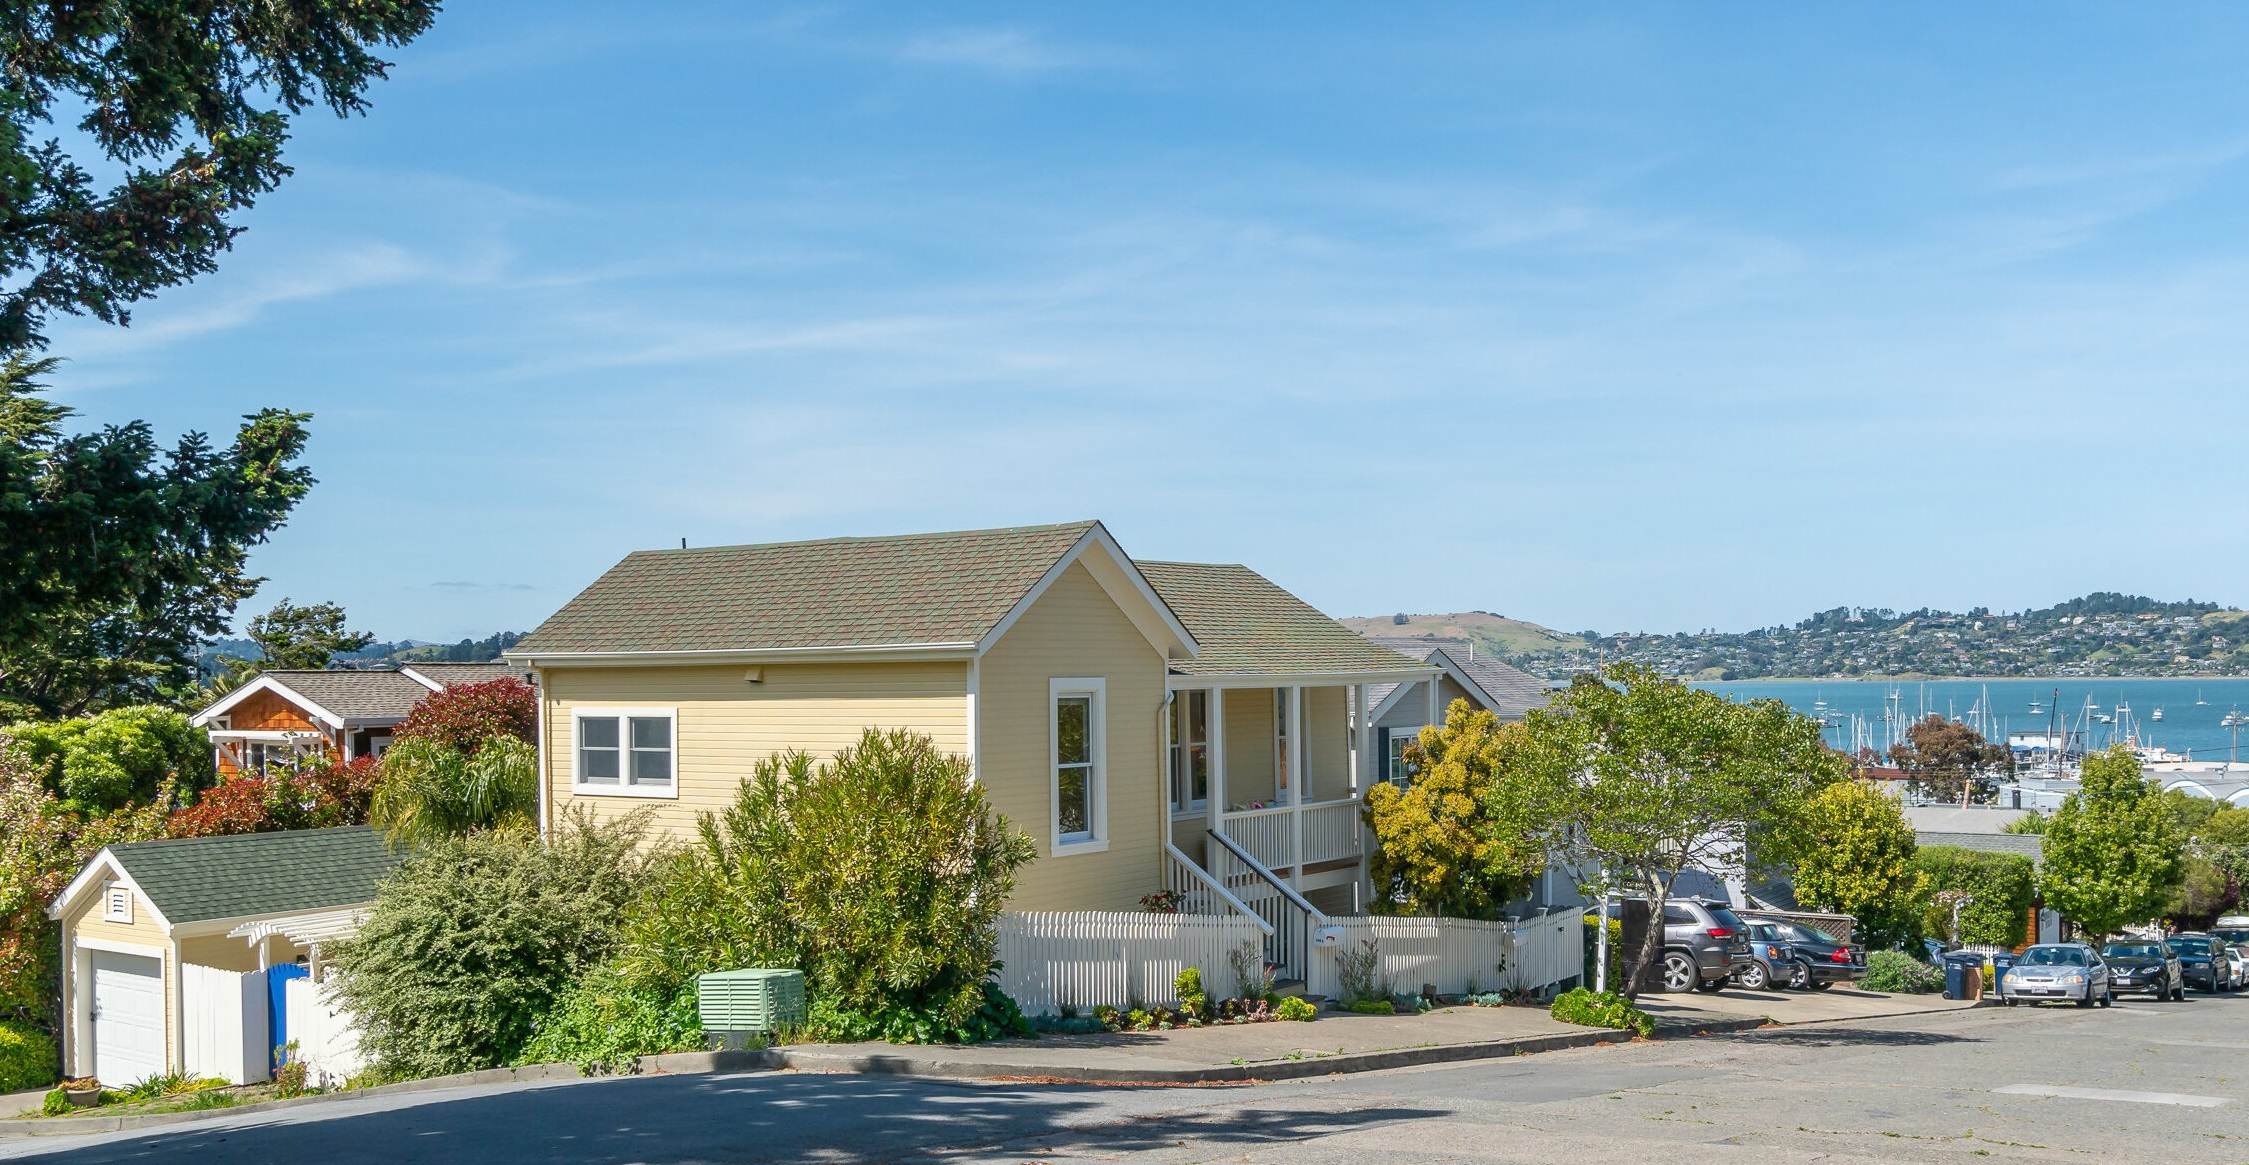 SOLD - 540 Easterby St, Sausalito ( Duplex)4 bed/ 2 bath, 1875 sf$1, 620,000Represented SellersMultiple offers, 14 day close, cash sale, $225,000 over asking